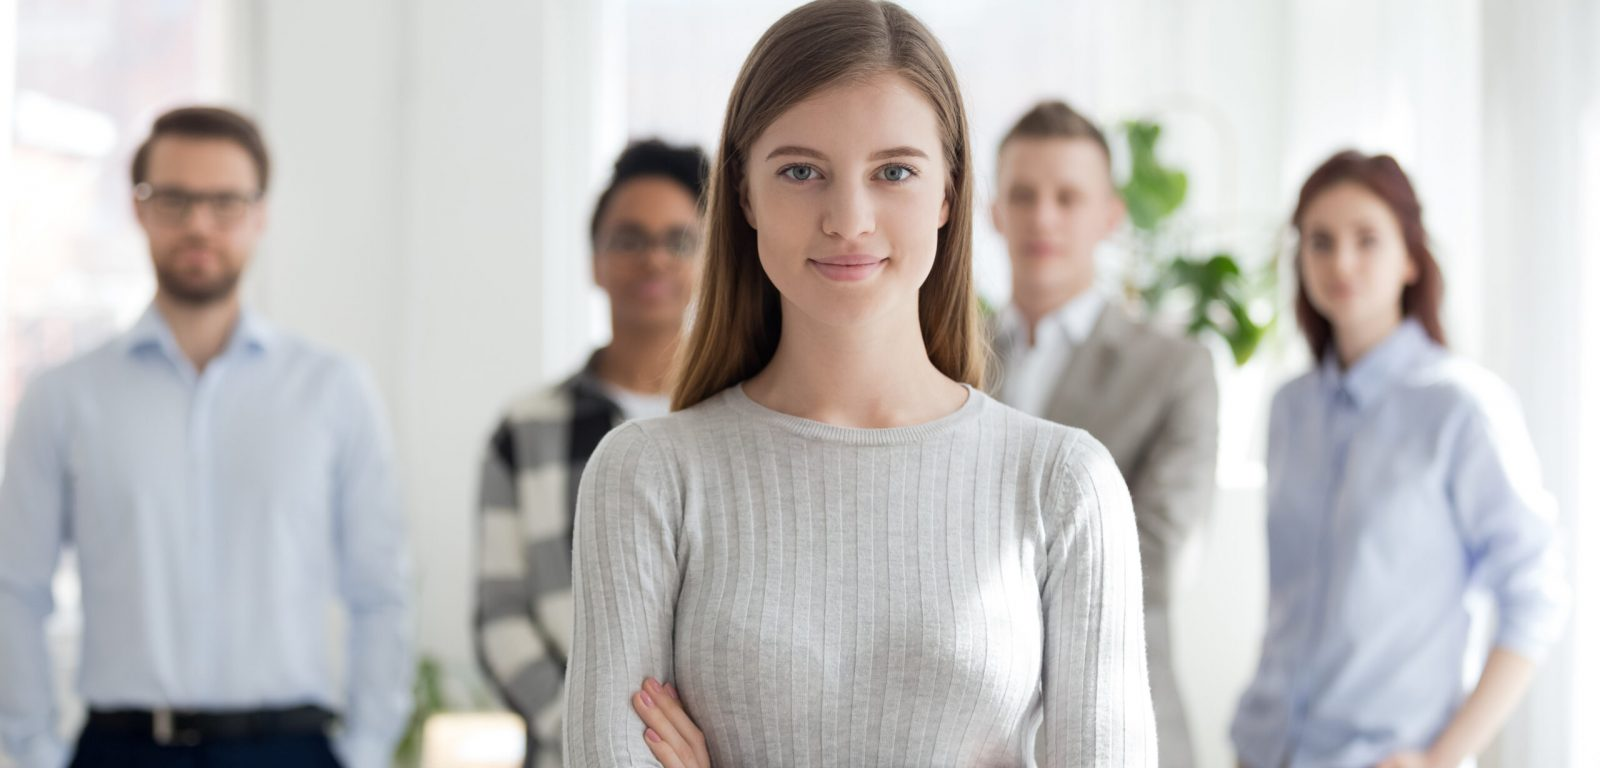 Confident young female leader, office worker, intern or company employee smiling looking at camera with team at background, happy successful businesswoman professional manager business coach portrait